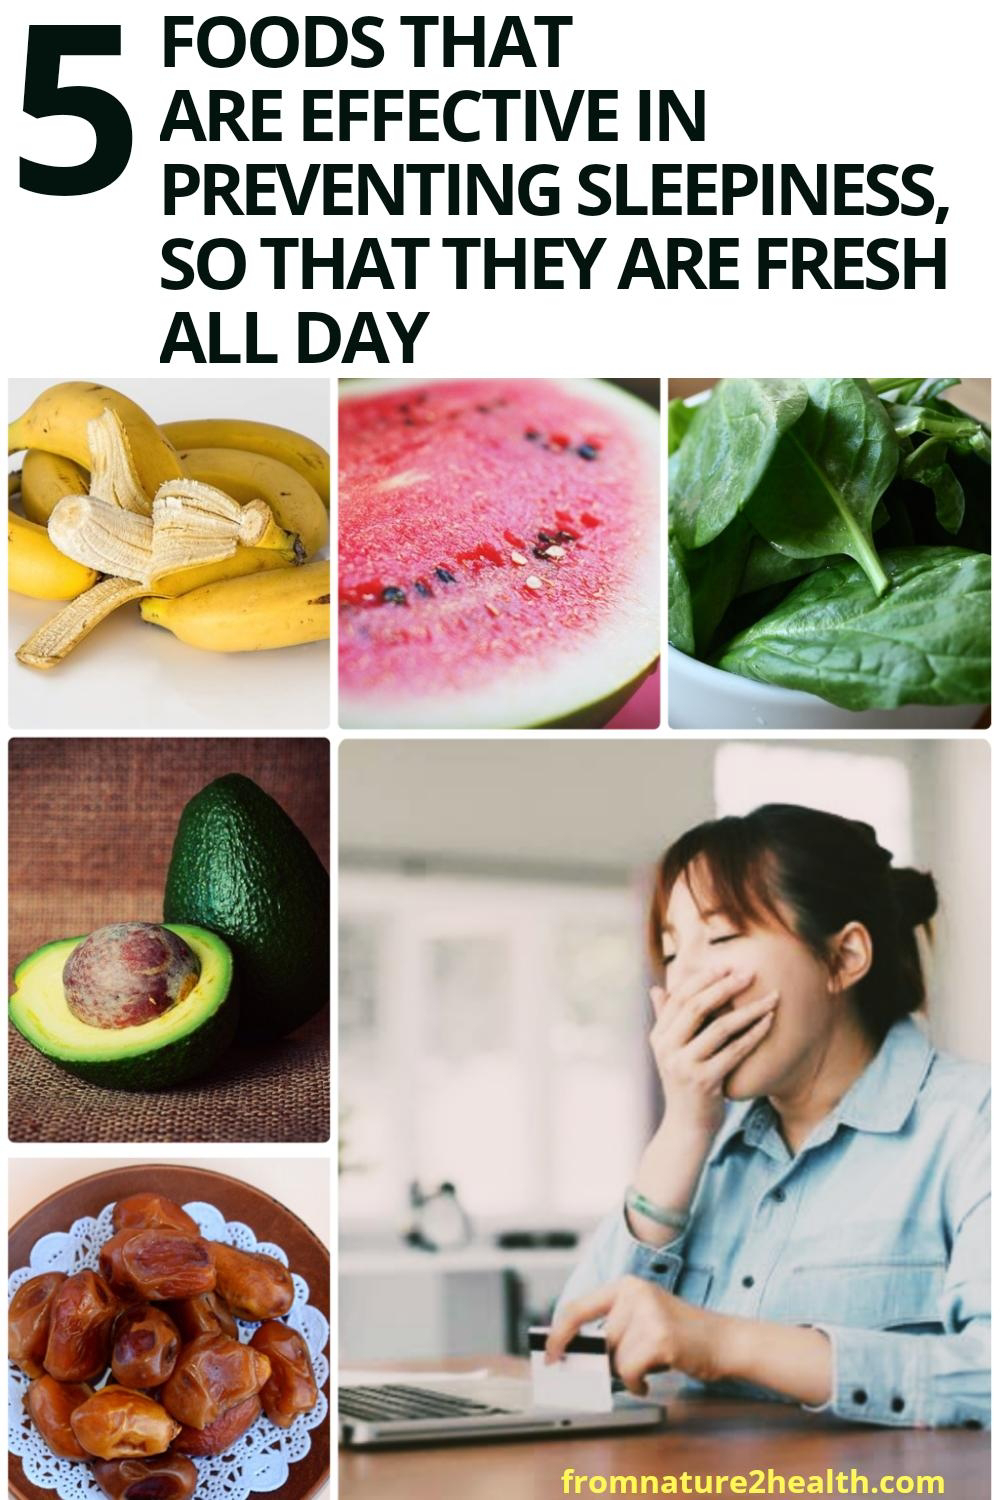 Banana, Watermelon, Spinach are Foods That are Effective in Preventing Sleepiness, so That They Are Fresh All Day